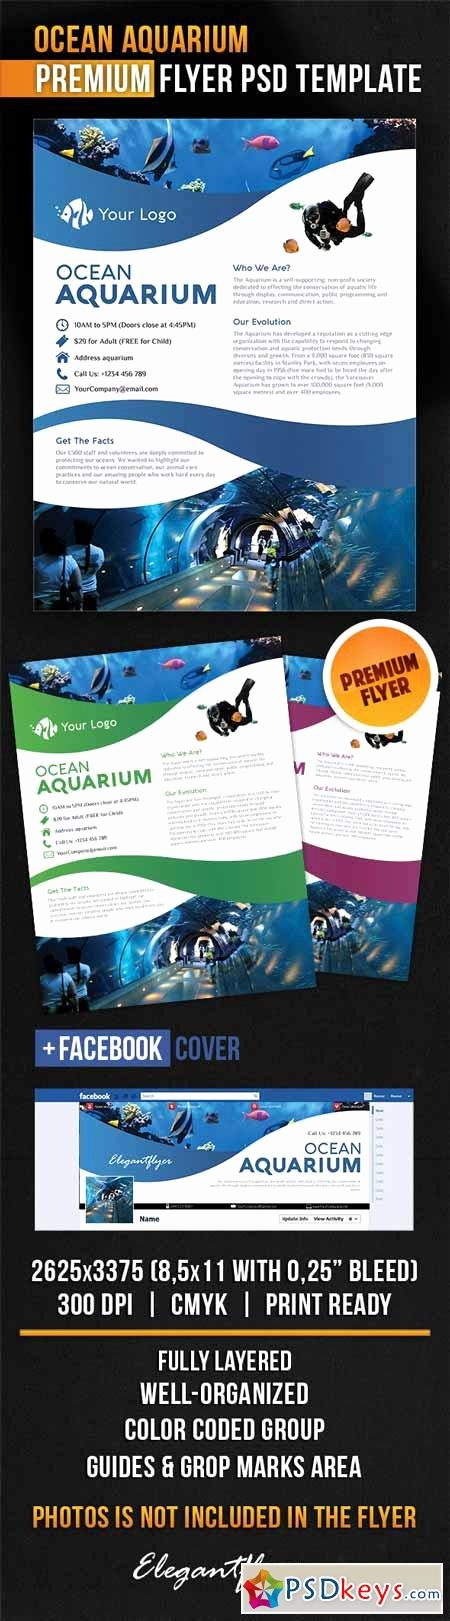 Facebook Cover Template Psd Luxury Ocean Aquarium – Flyer Psd Template Cover